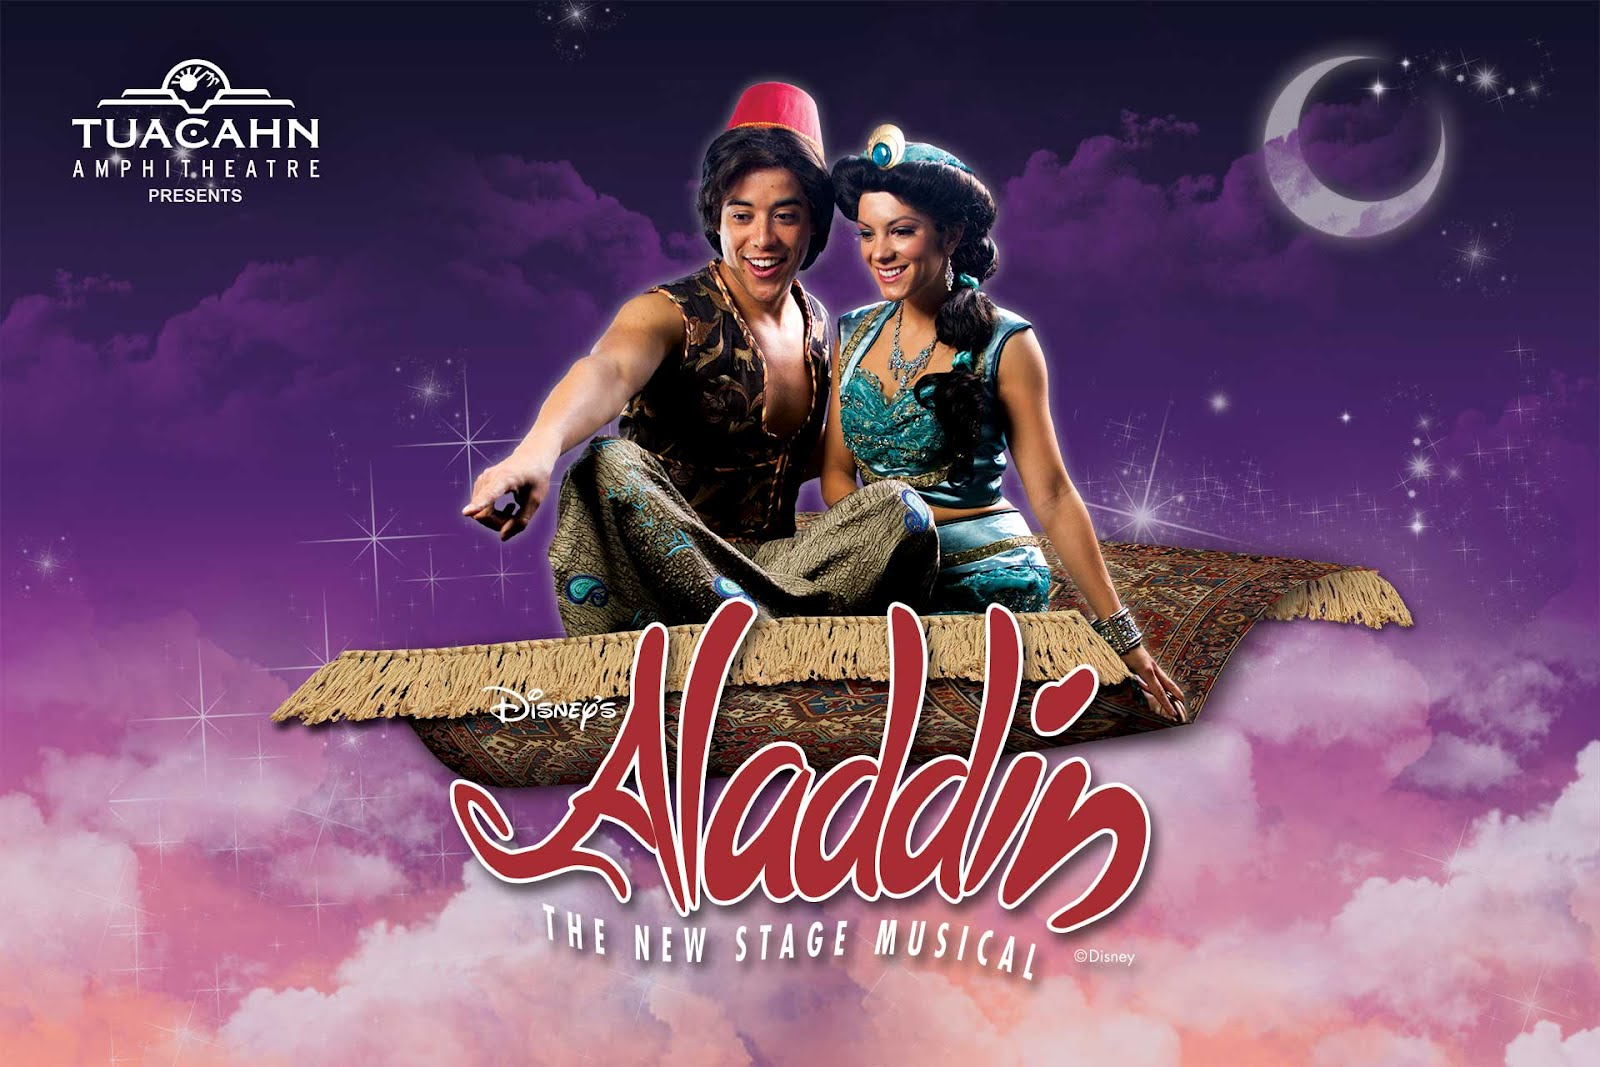 aladdin singles Compiled by darcy vantiger october 2006 frequently asked questions this section contains those questions which have often been asked regarding aladdin mantle lamps.